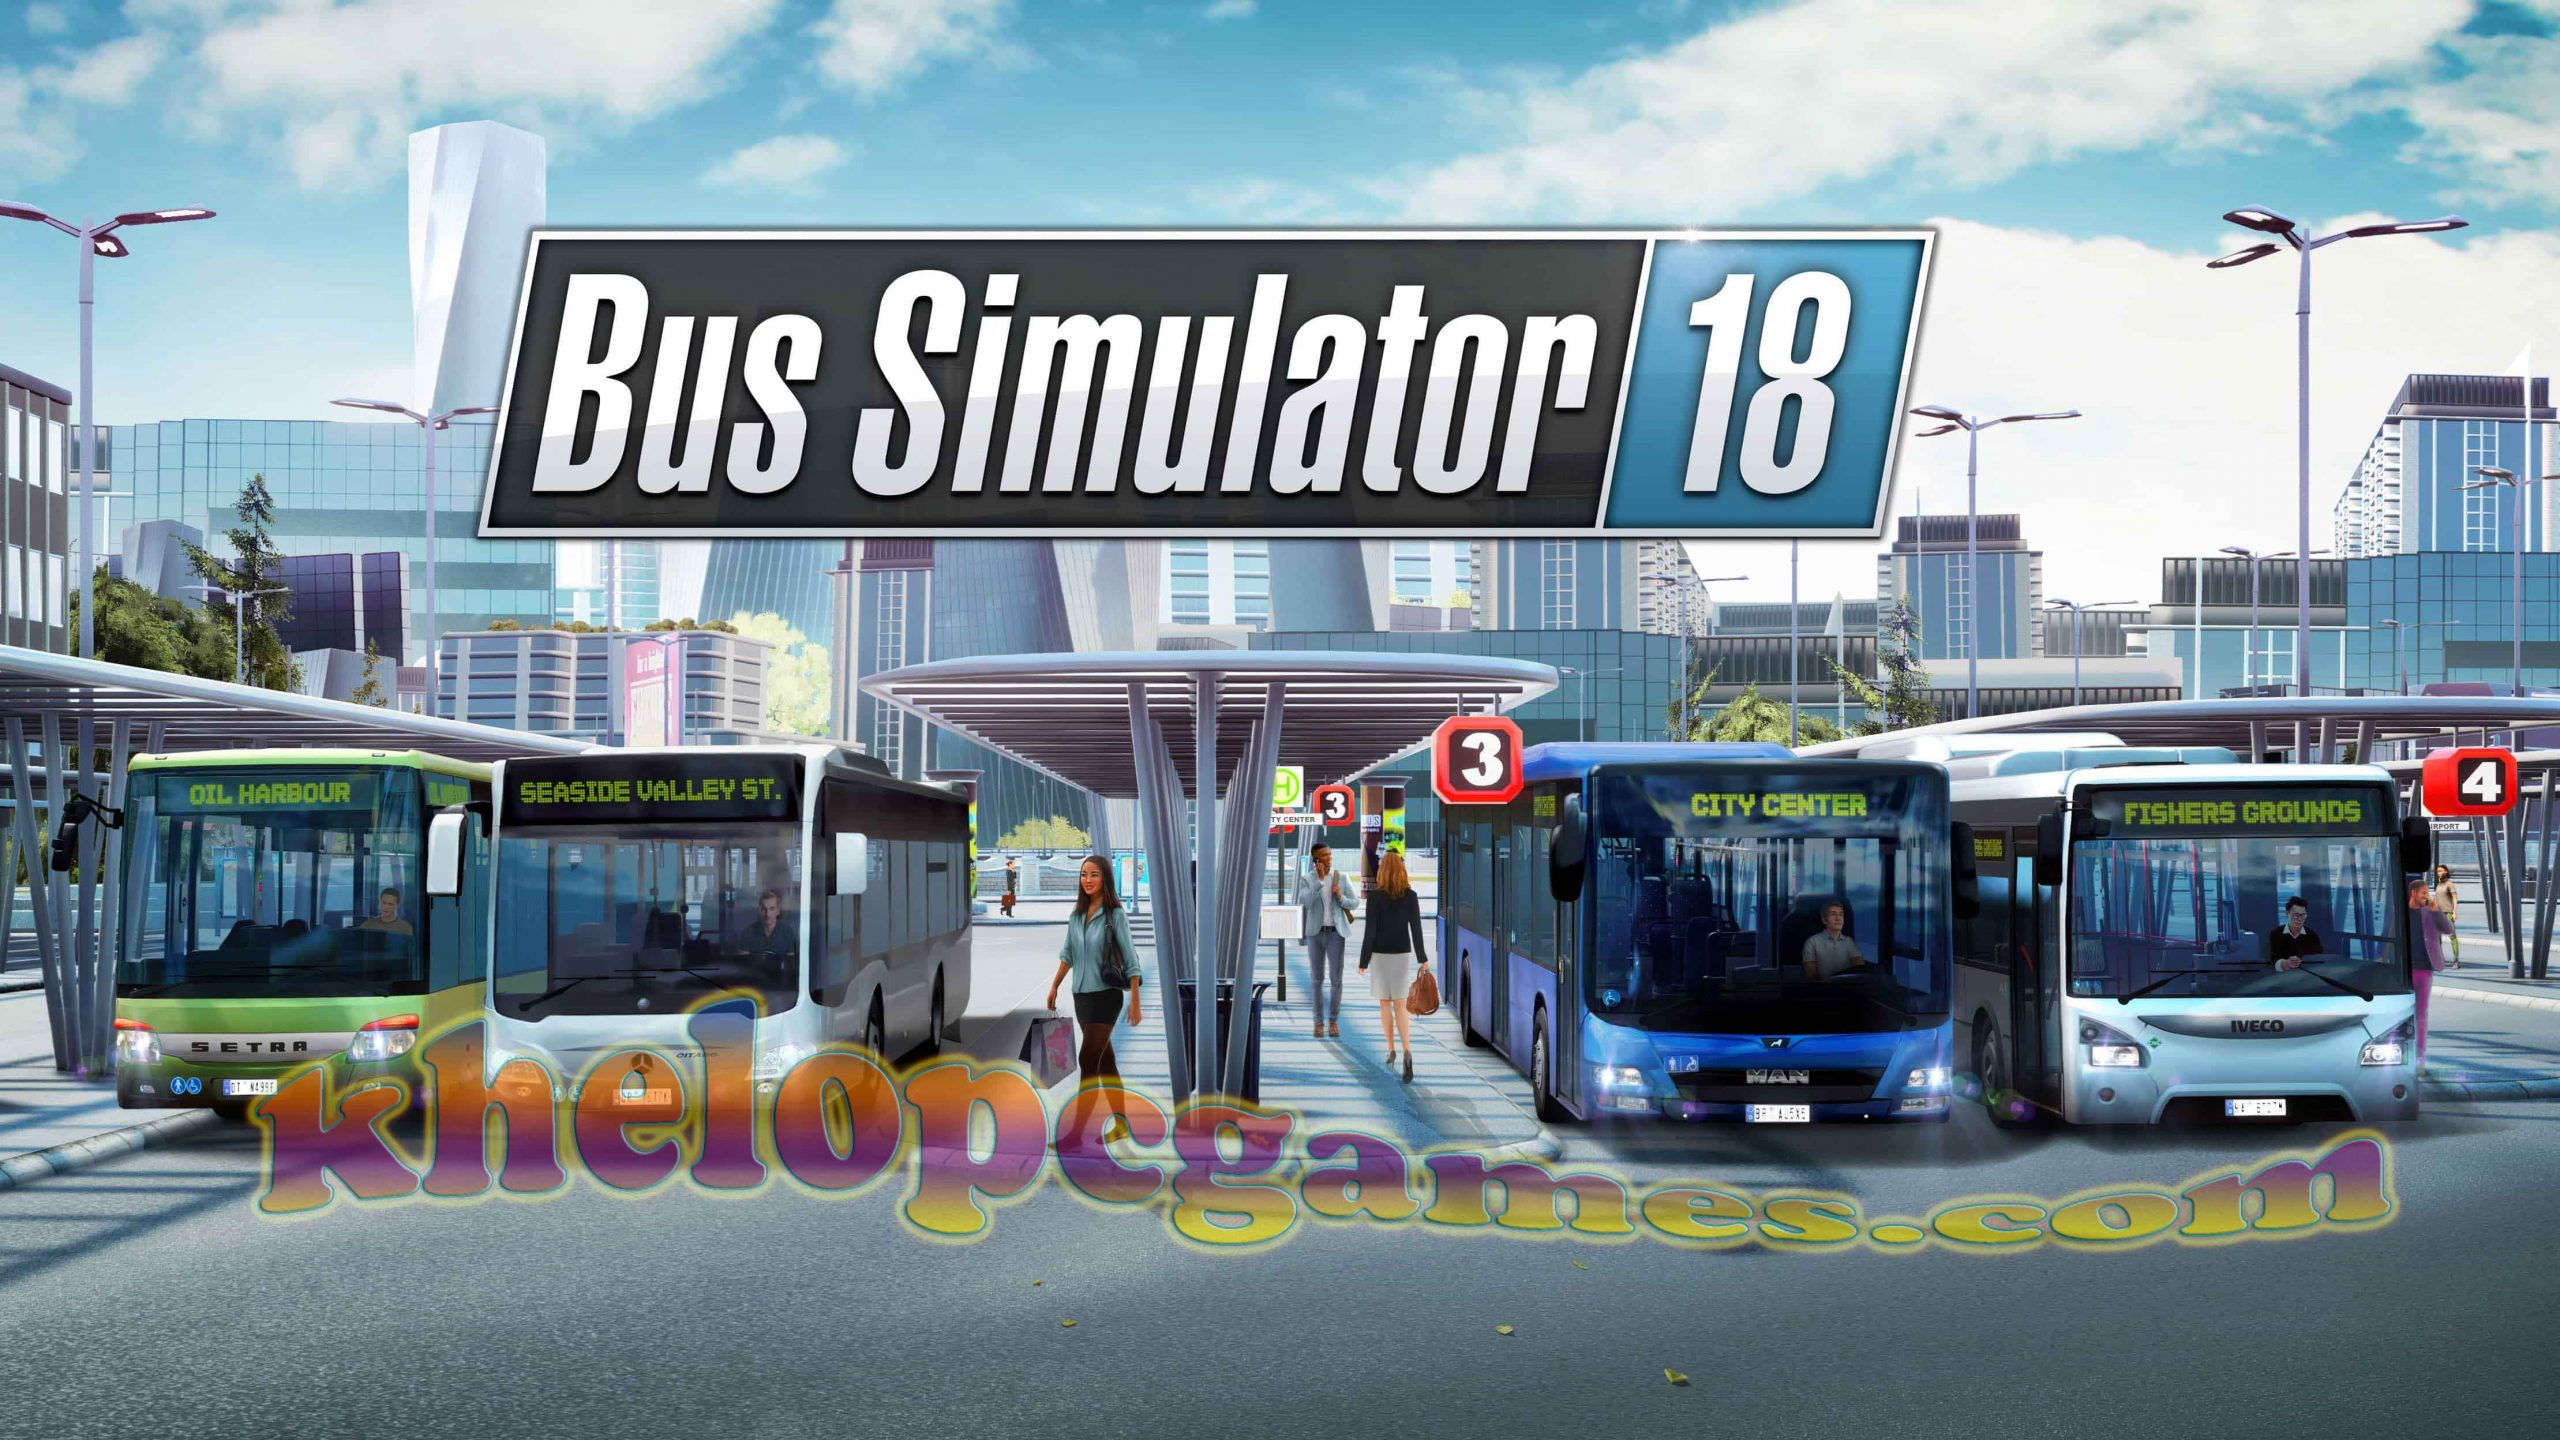 Bus Simulator For Pc Game Full Setup 2020 18 Free Download